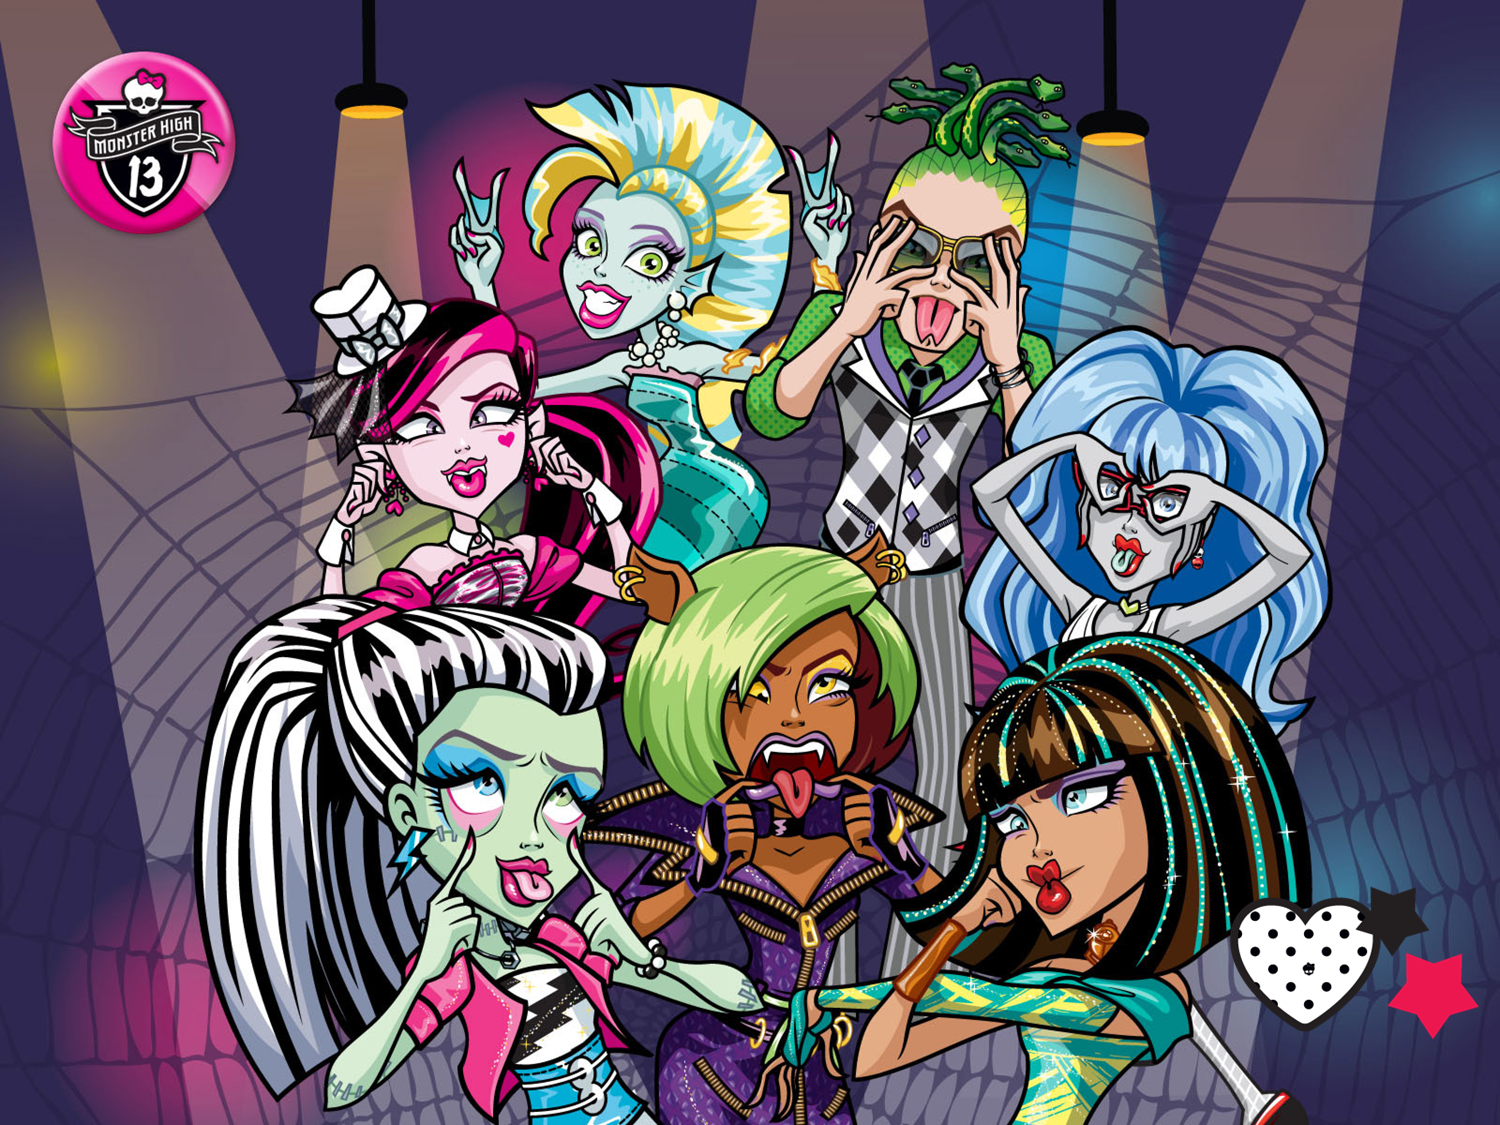 Fondos De Pantalla De Monster High: Monster High Wallpaper